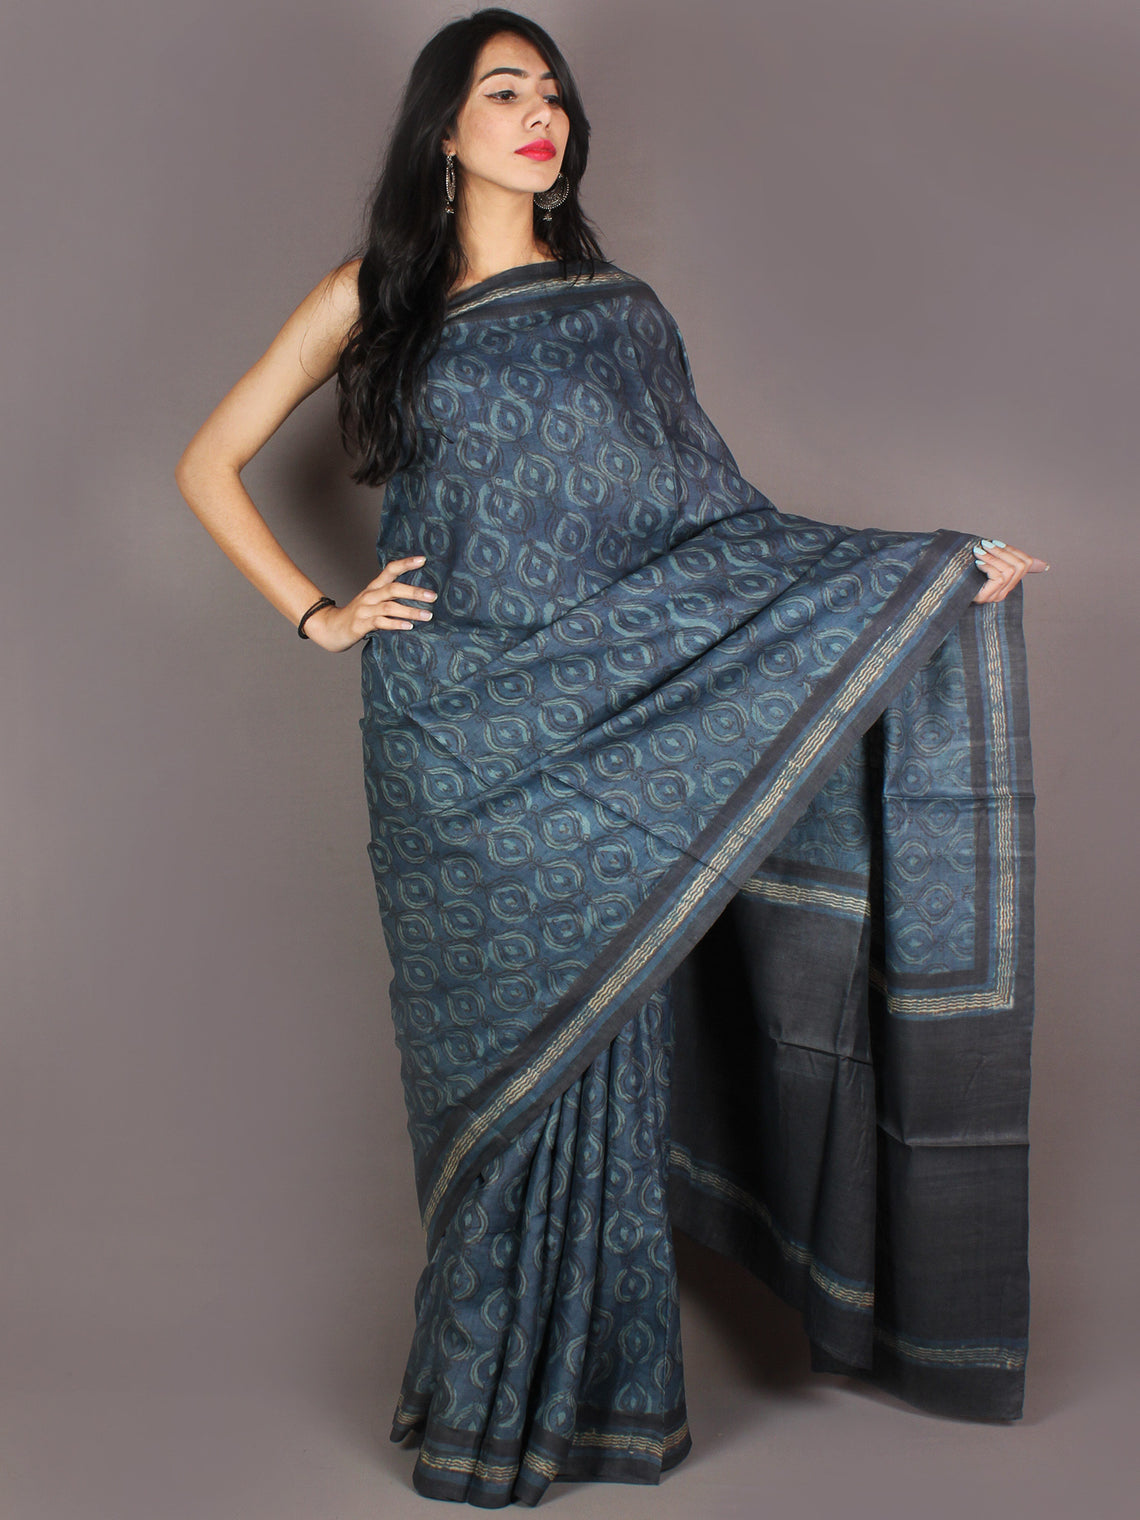 Tussar Handloom Silk Hand Block Printed Saree in Indigo Black & Beige- S03170955